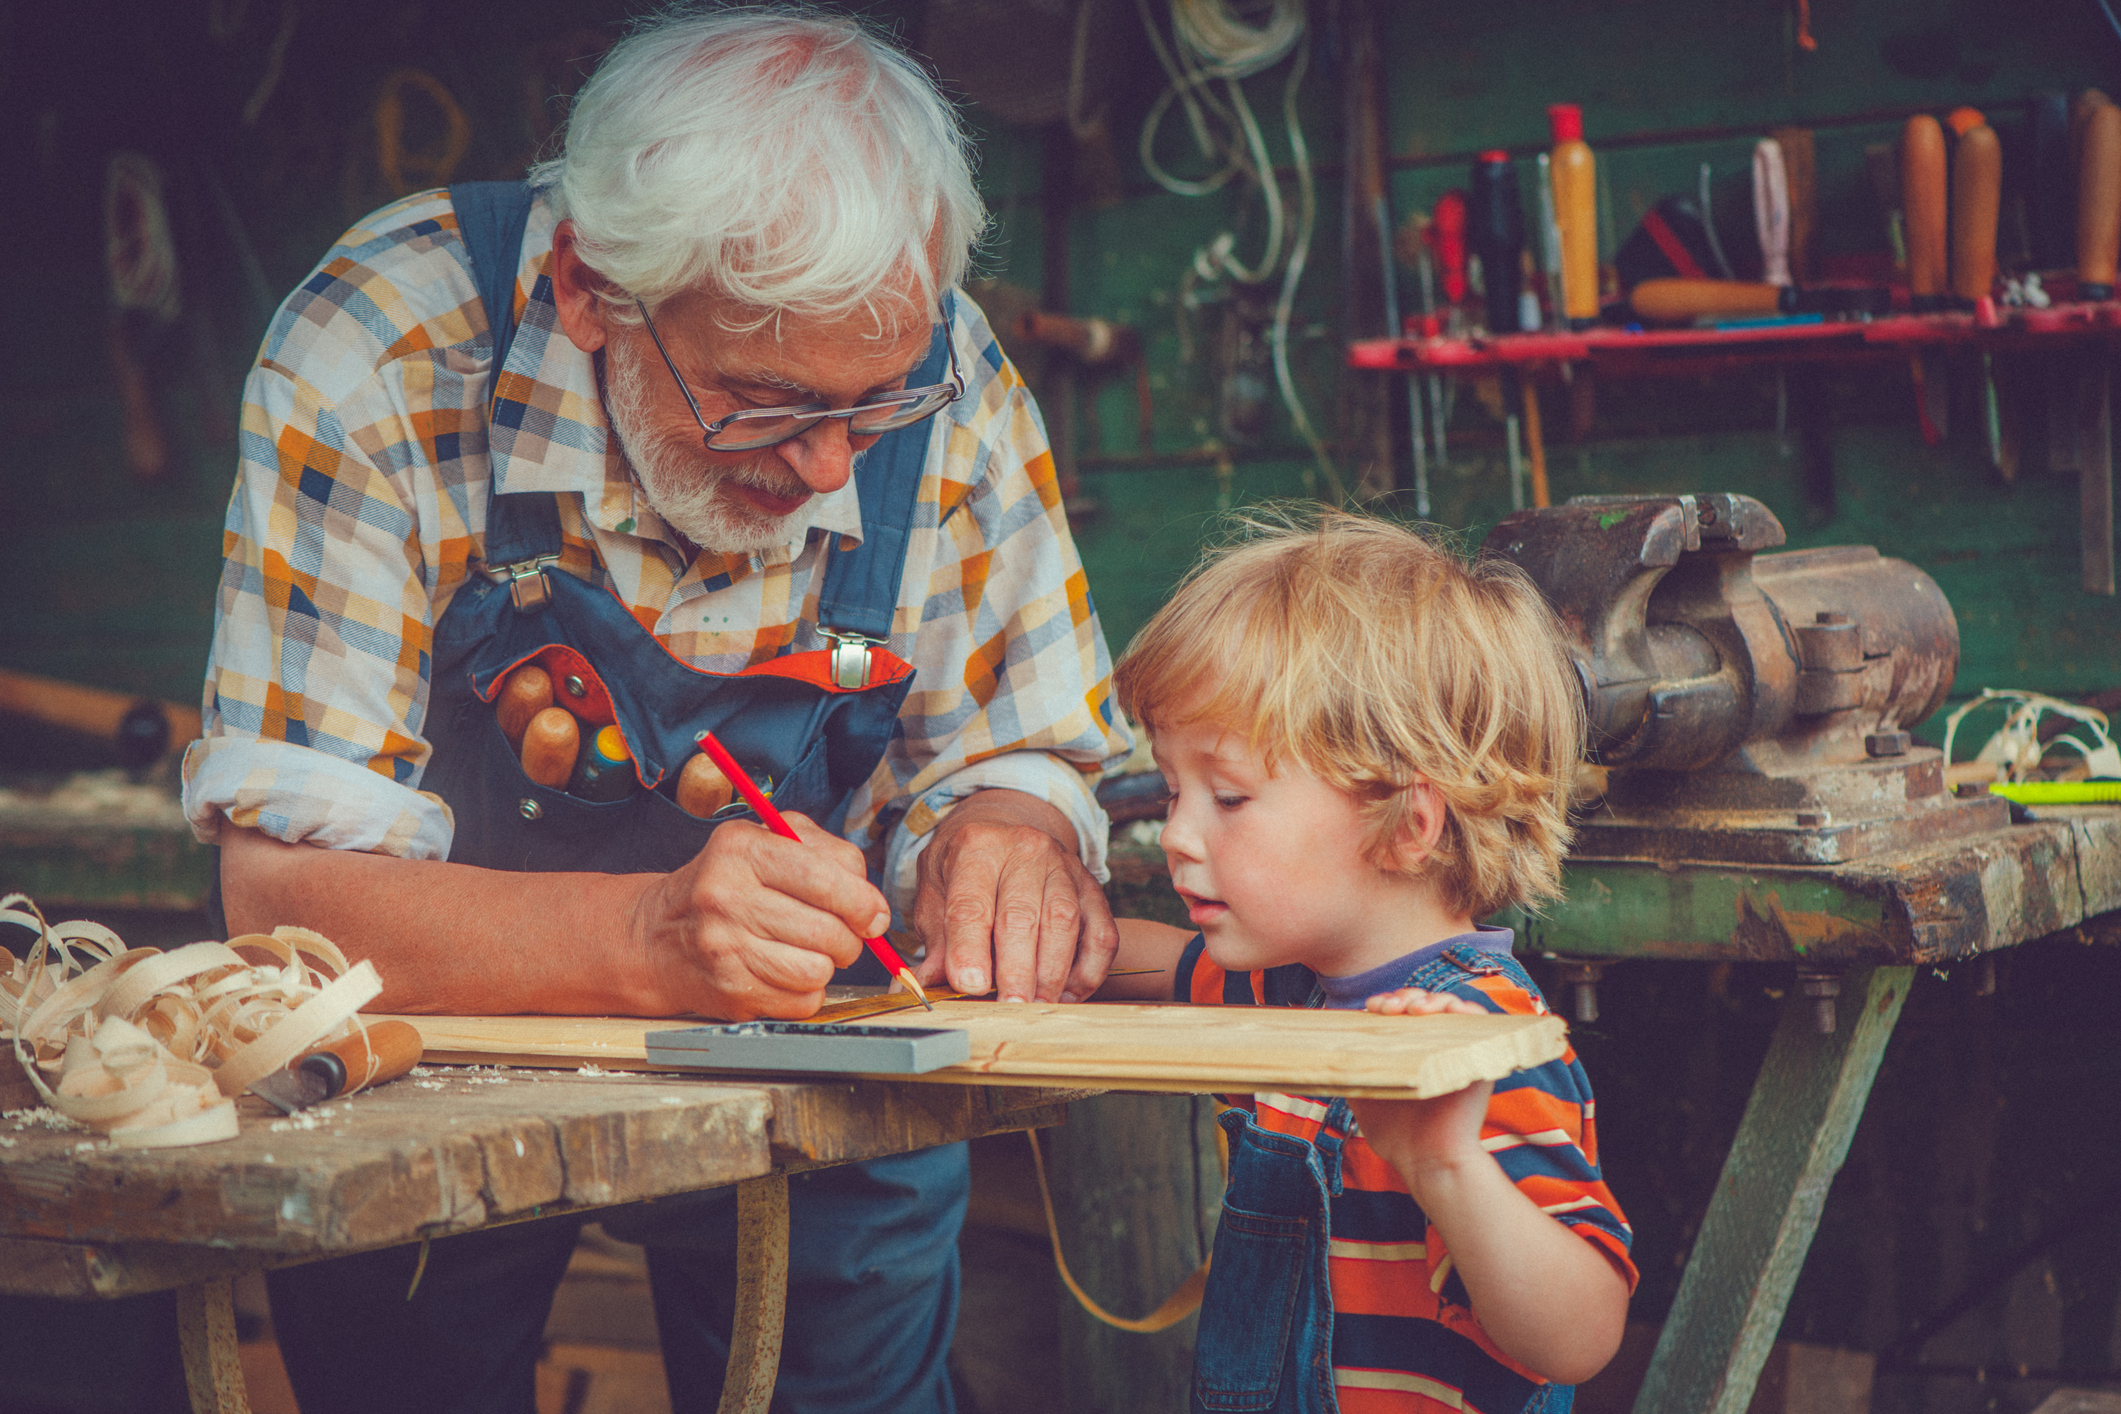 Teach each generation skill-sets for the future!